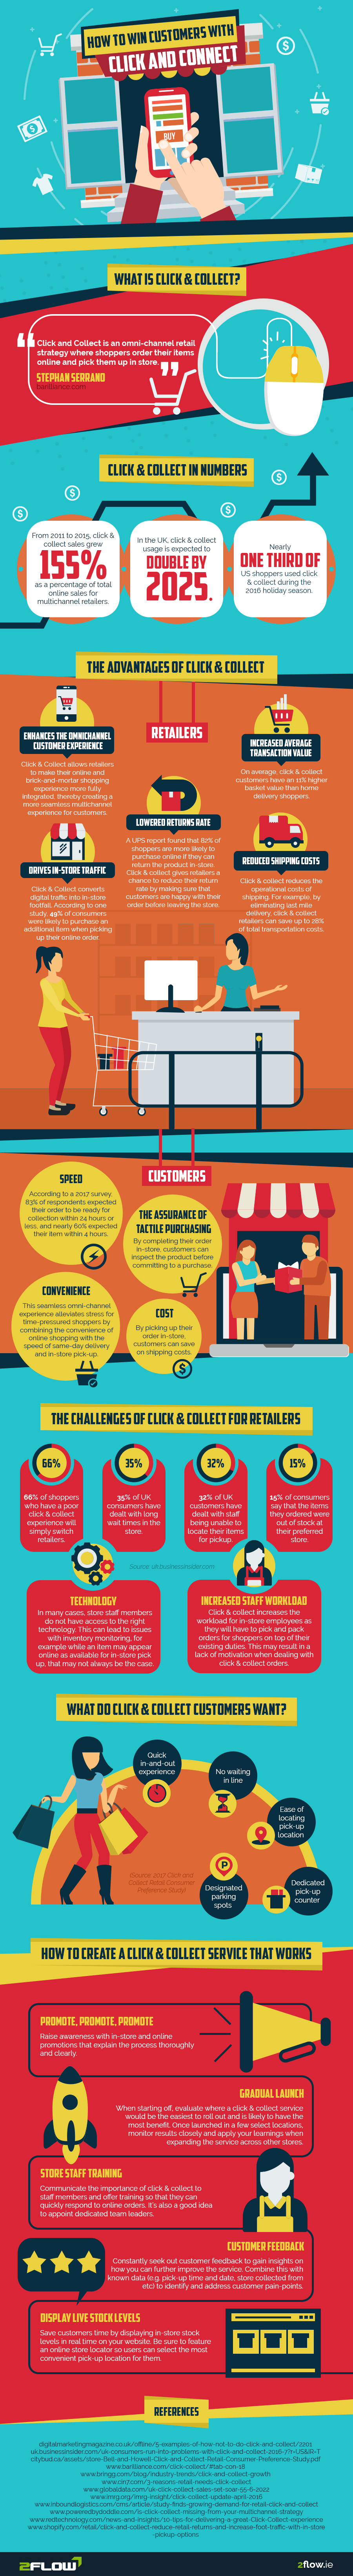 How to win customers with click and collect